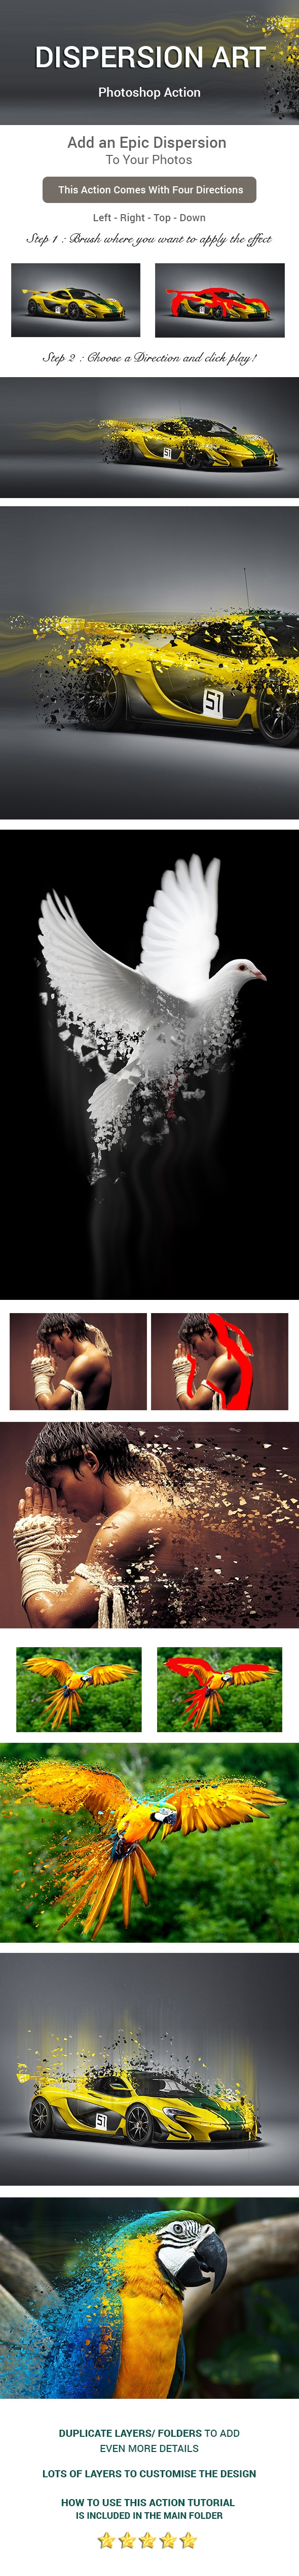 Dispersion Art Photoshop Action - Photo Effects Actions